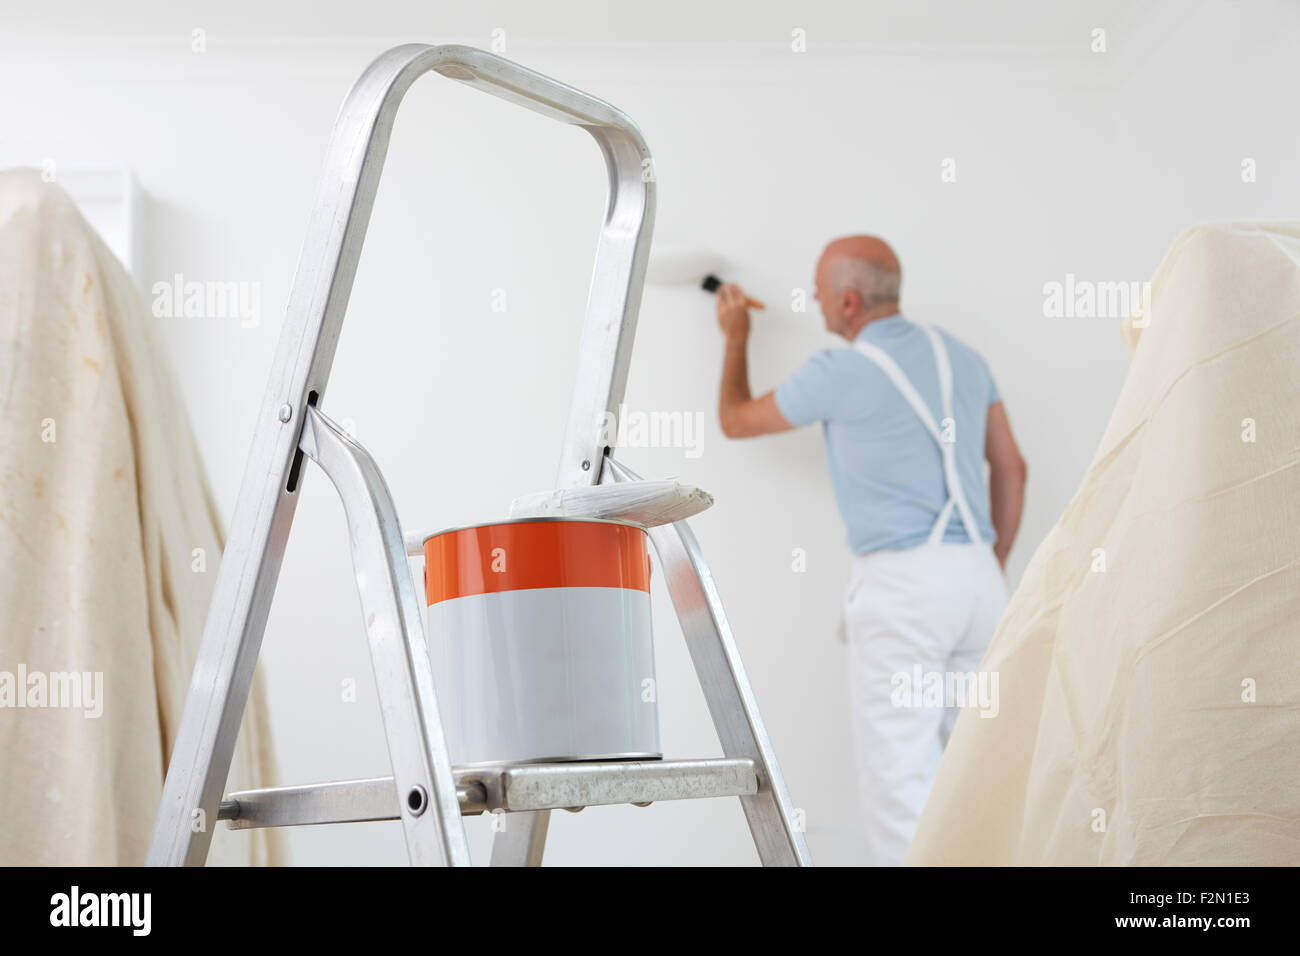 Man Decorating Room With Can Of Paint And Brush In Foreground - Stock Image